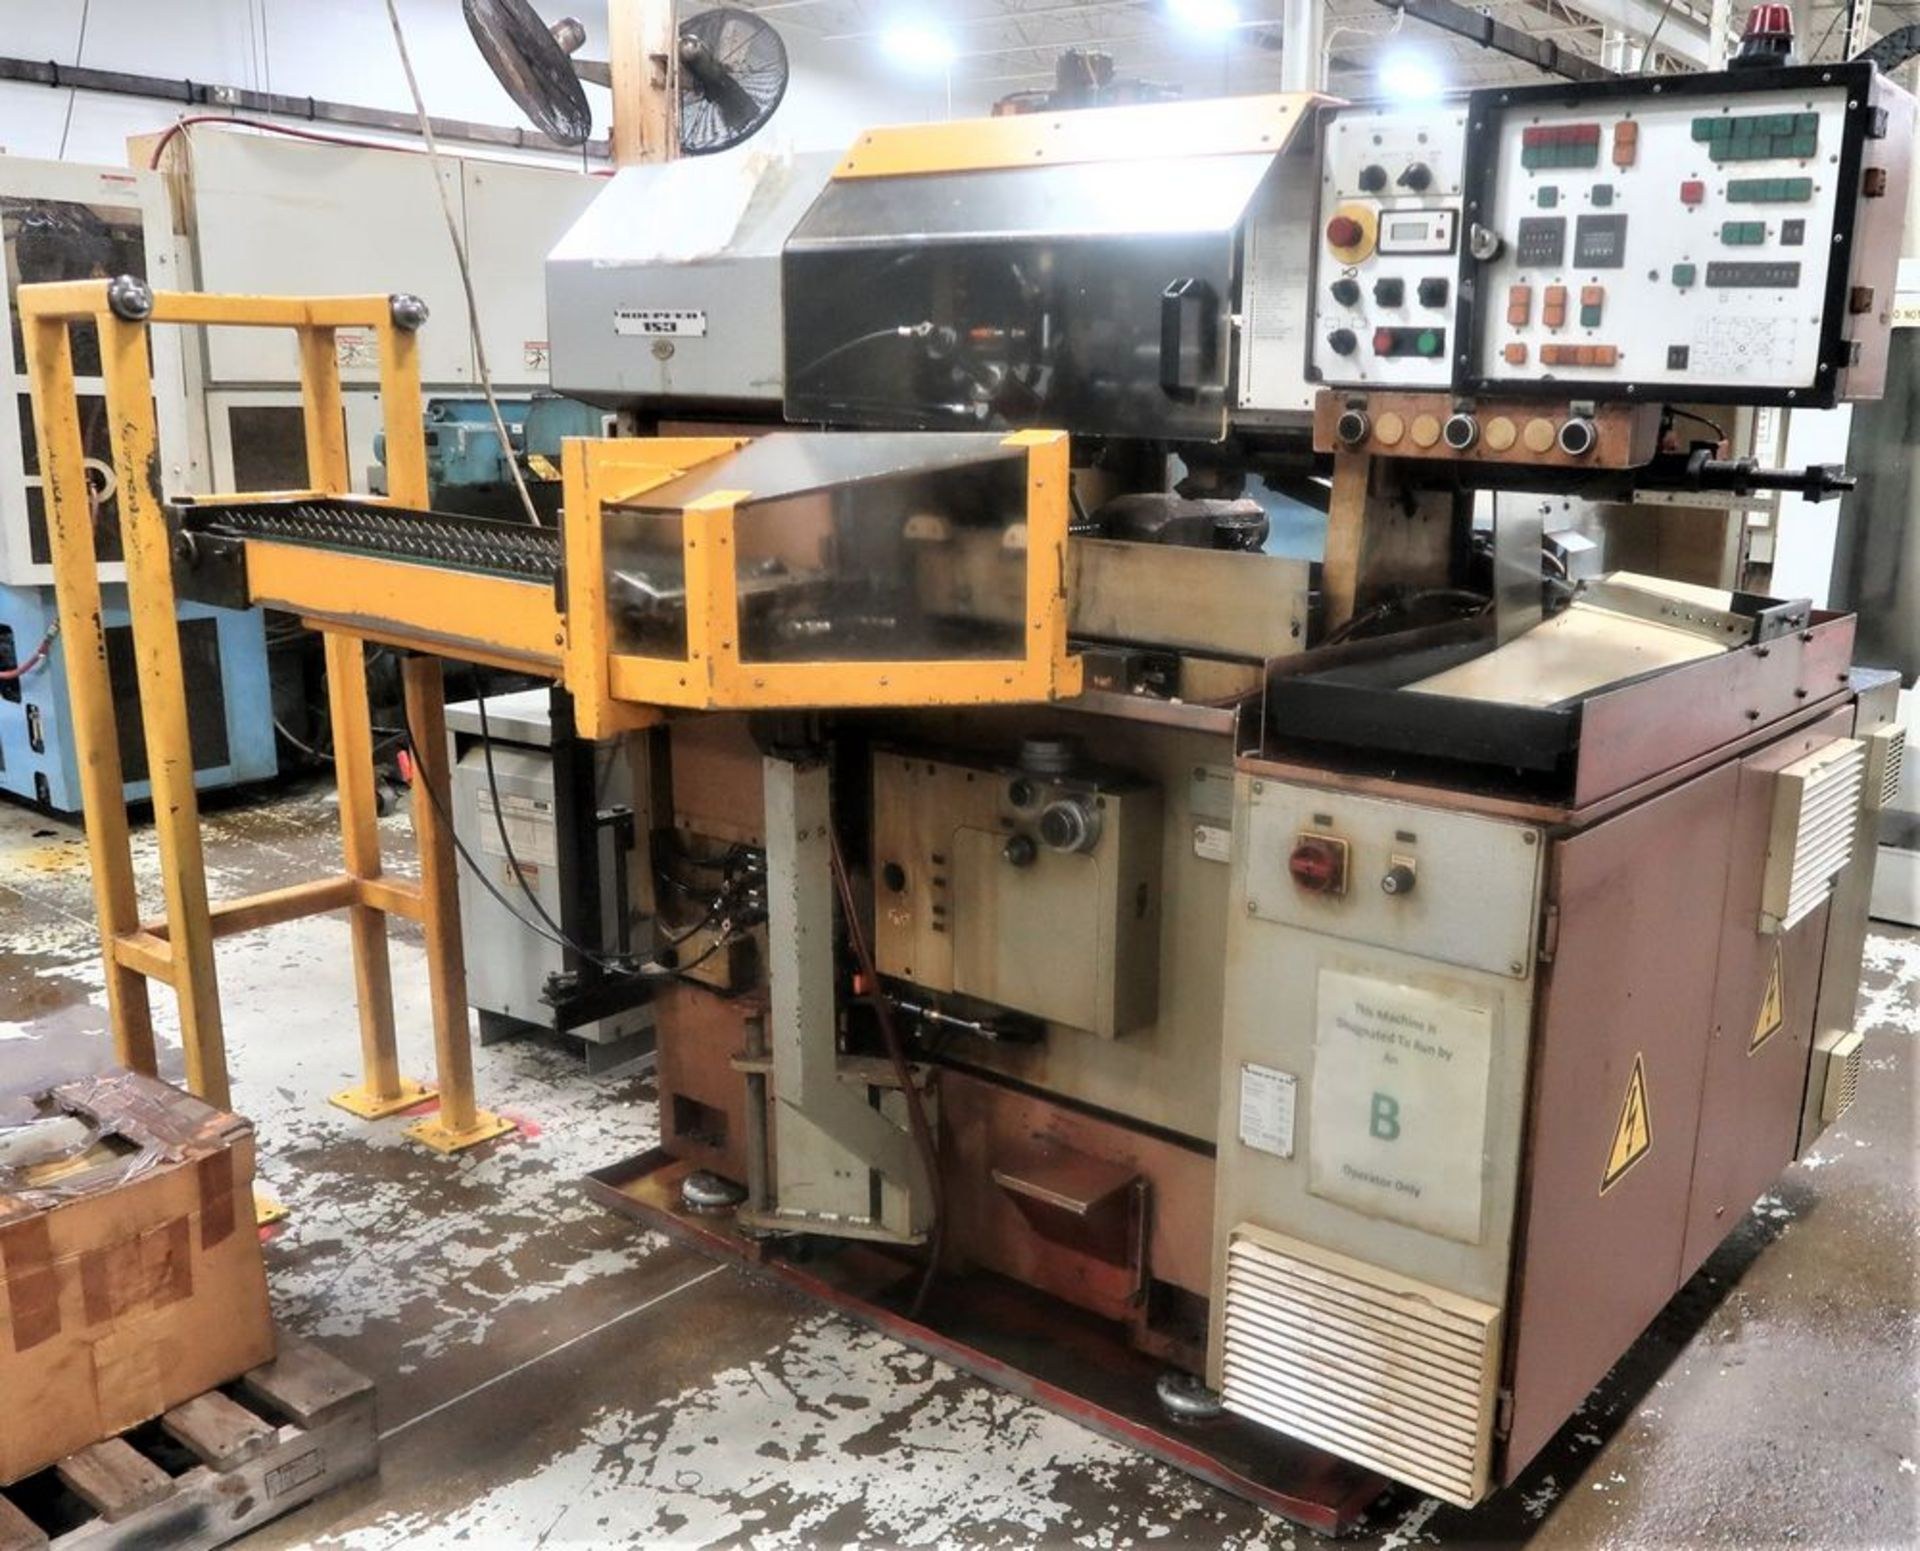 Koepfer 153B Gear Hobber w/Automatic Loading, S/N 153187 - Image 2 of 8